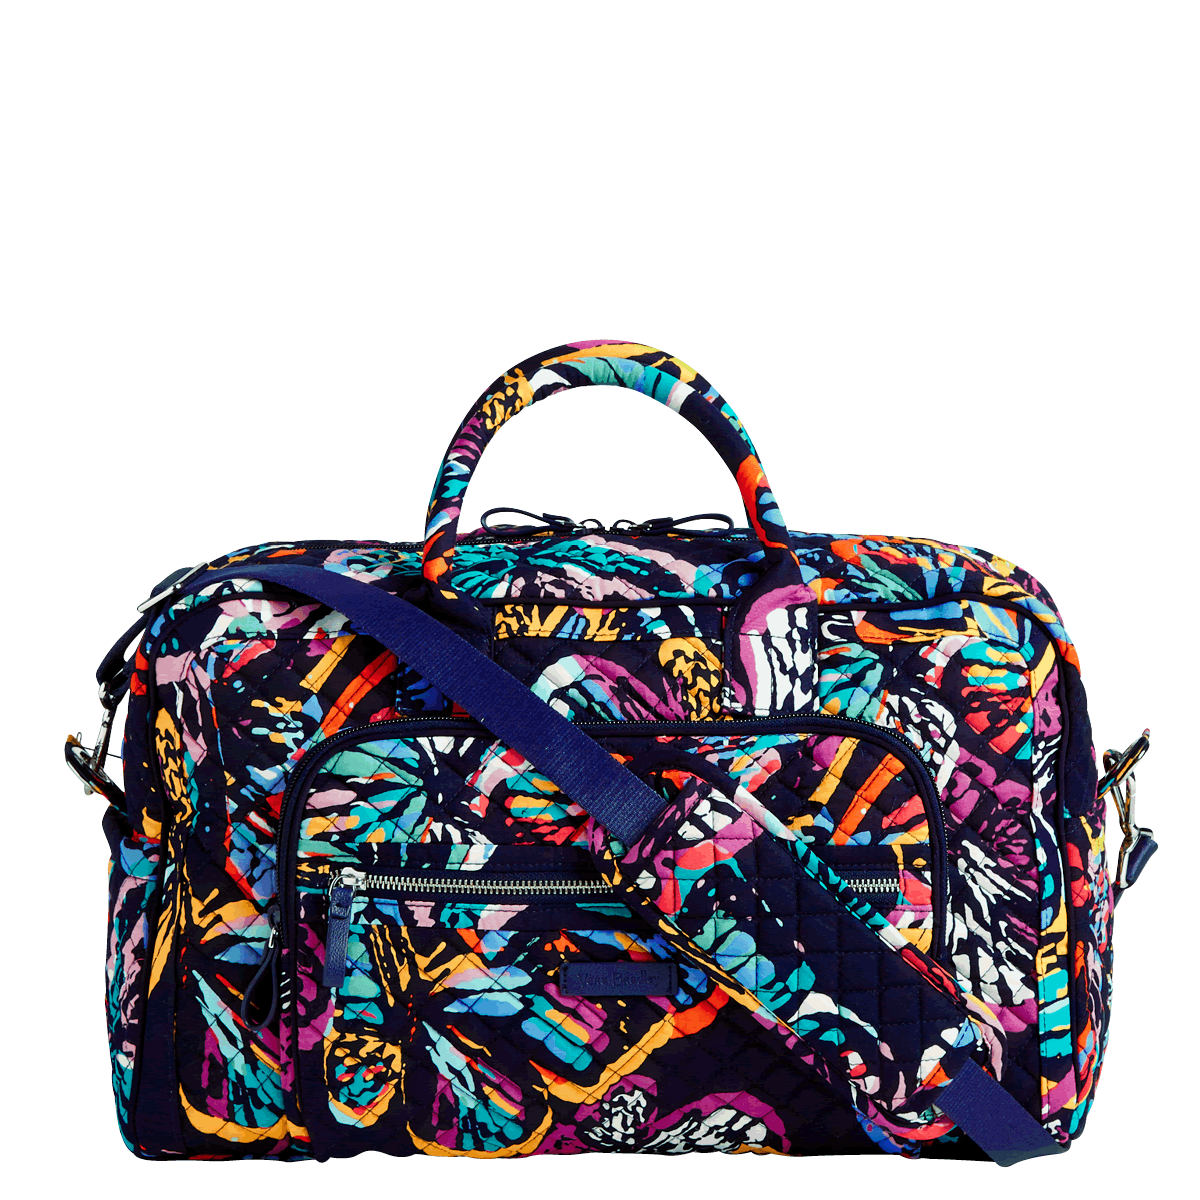 Vera Bradley Travel Bags - Macy s cd2a1a28f5000